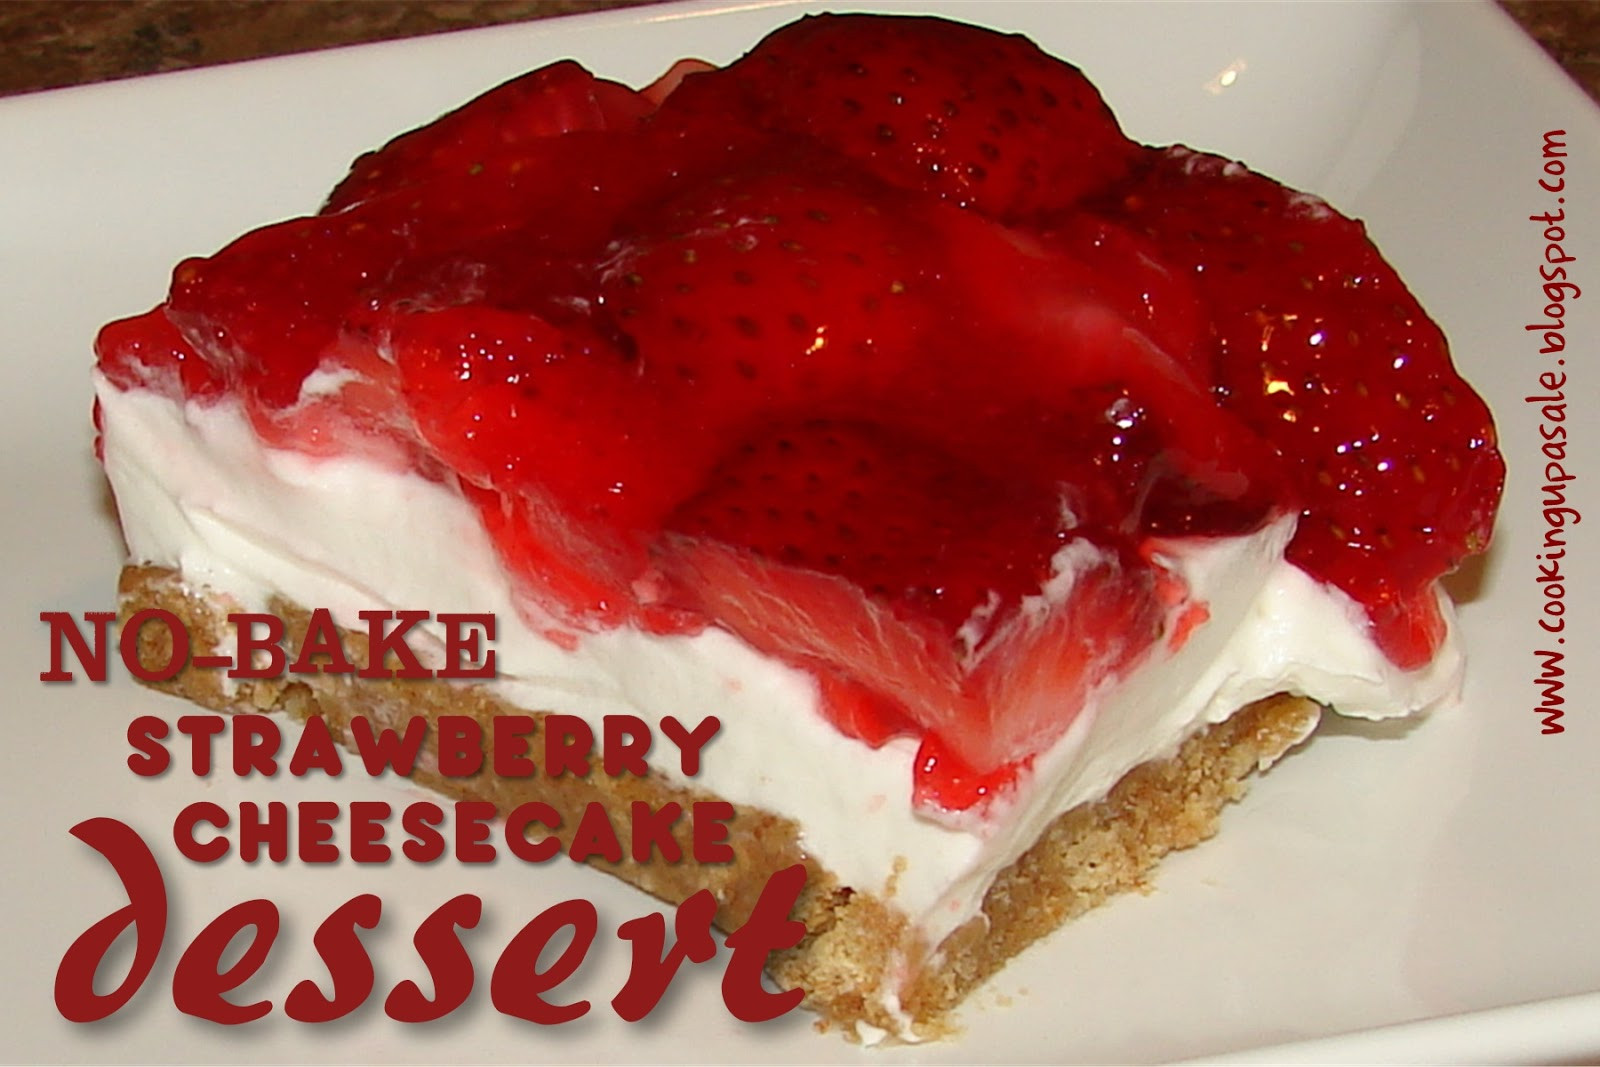 No Bake Strawberry Dessert  Cooking Up a Sale No Bake Strawberry Cheesecake Dessert